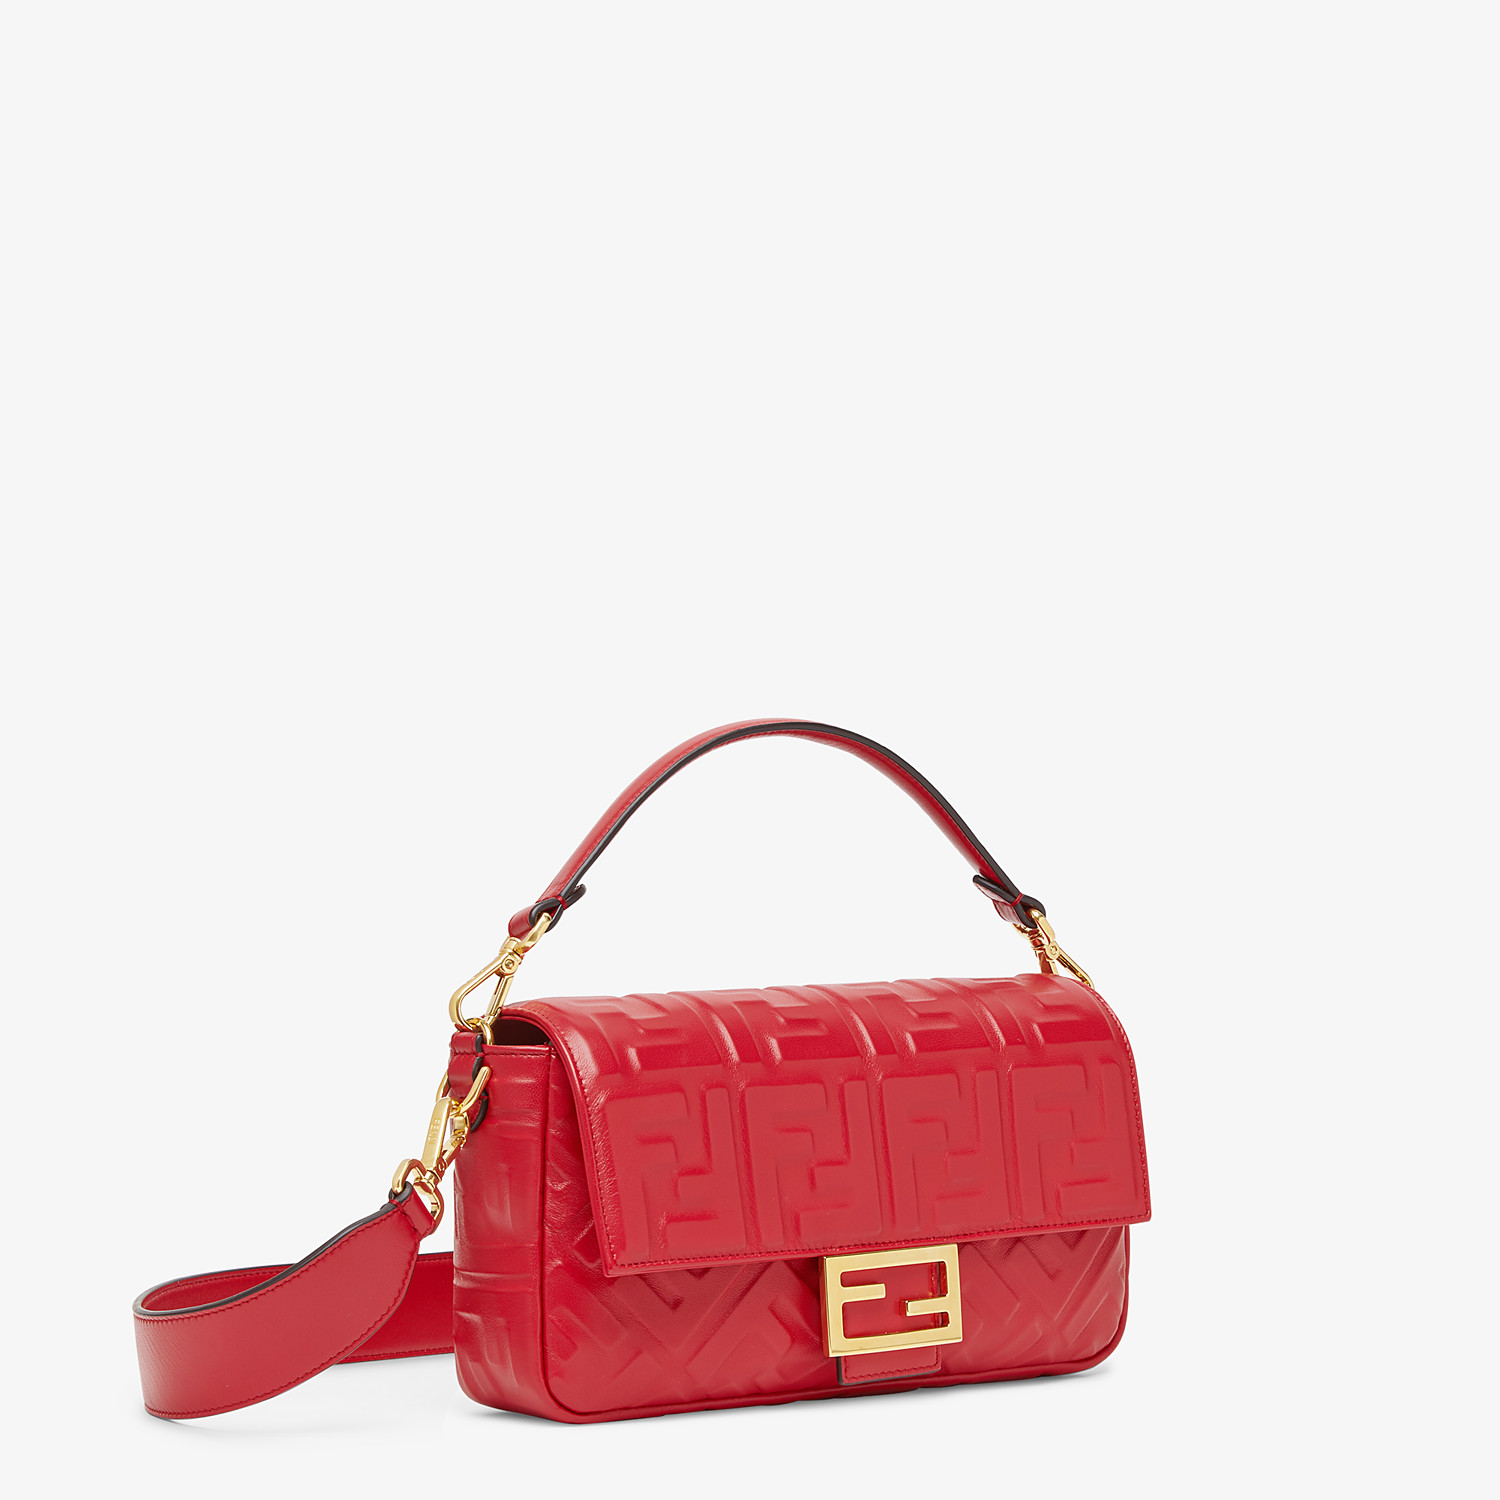 FENDI BAGUETTE - Red leather bag - view 3 detail